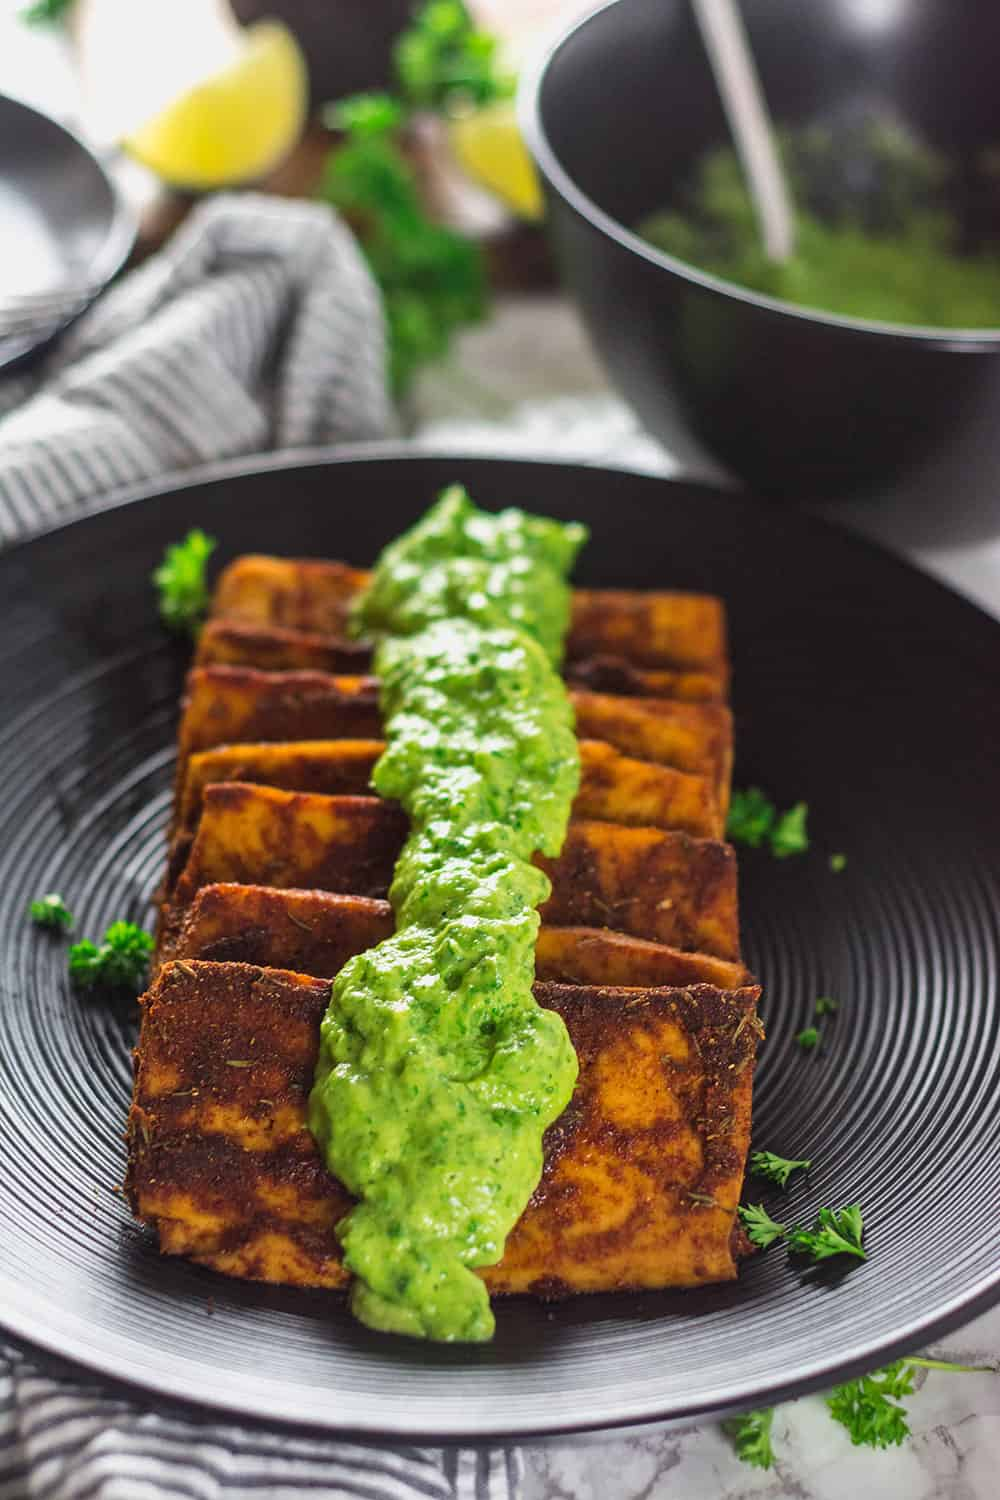 Vegan Tofu Steaks With Avocado Chimichurri